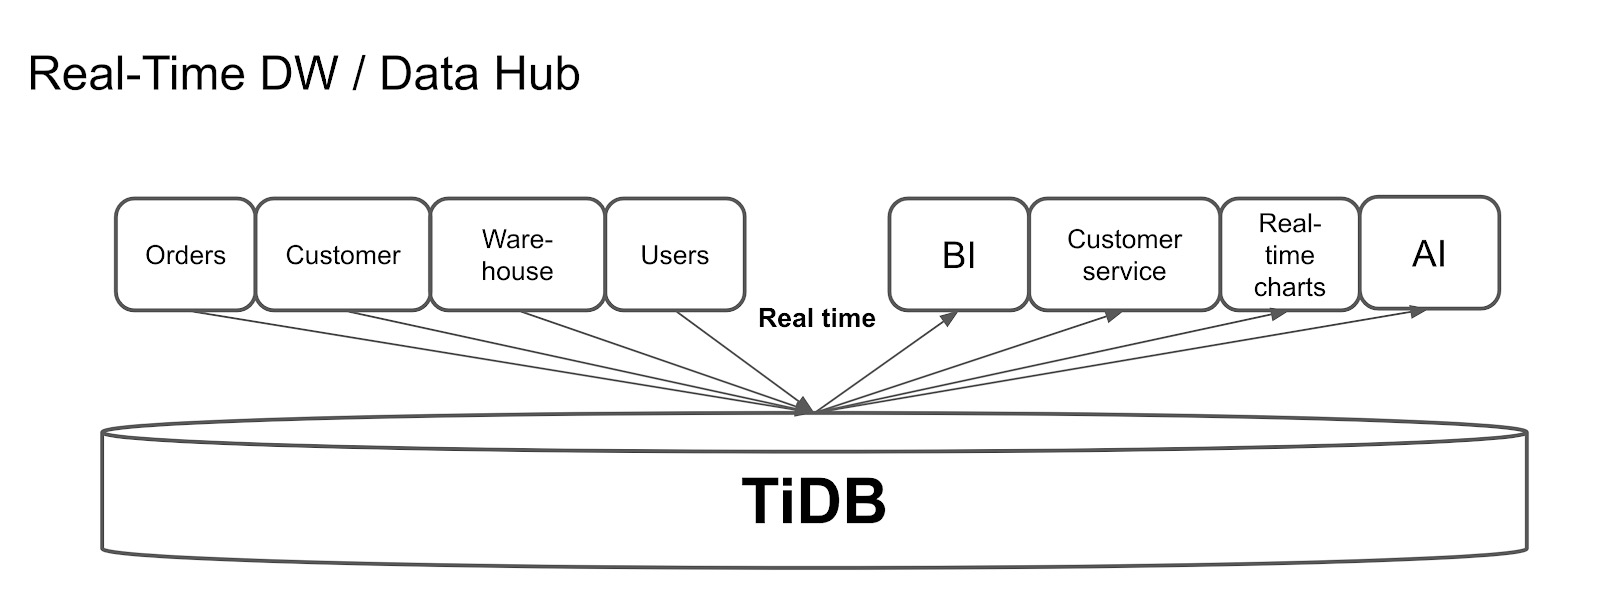 Use TiDB as a real-time data warehouse